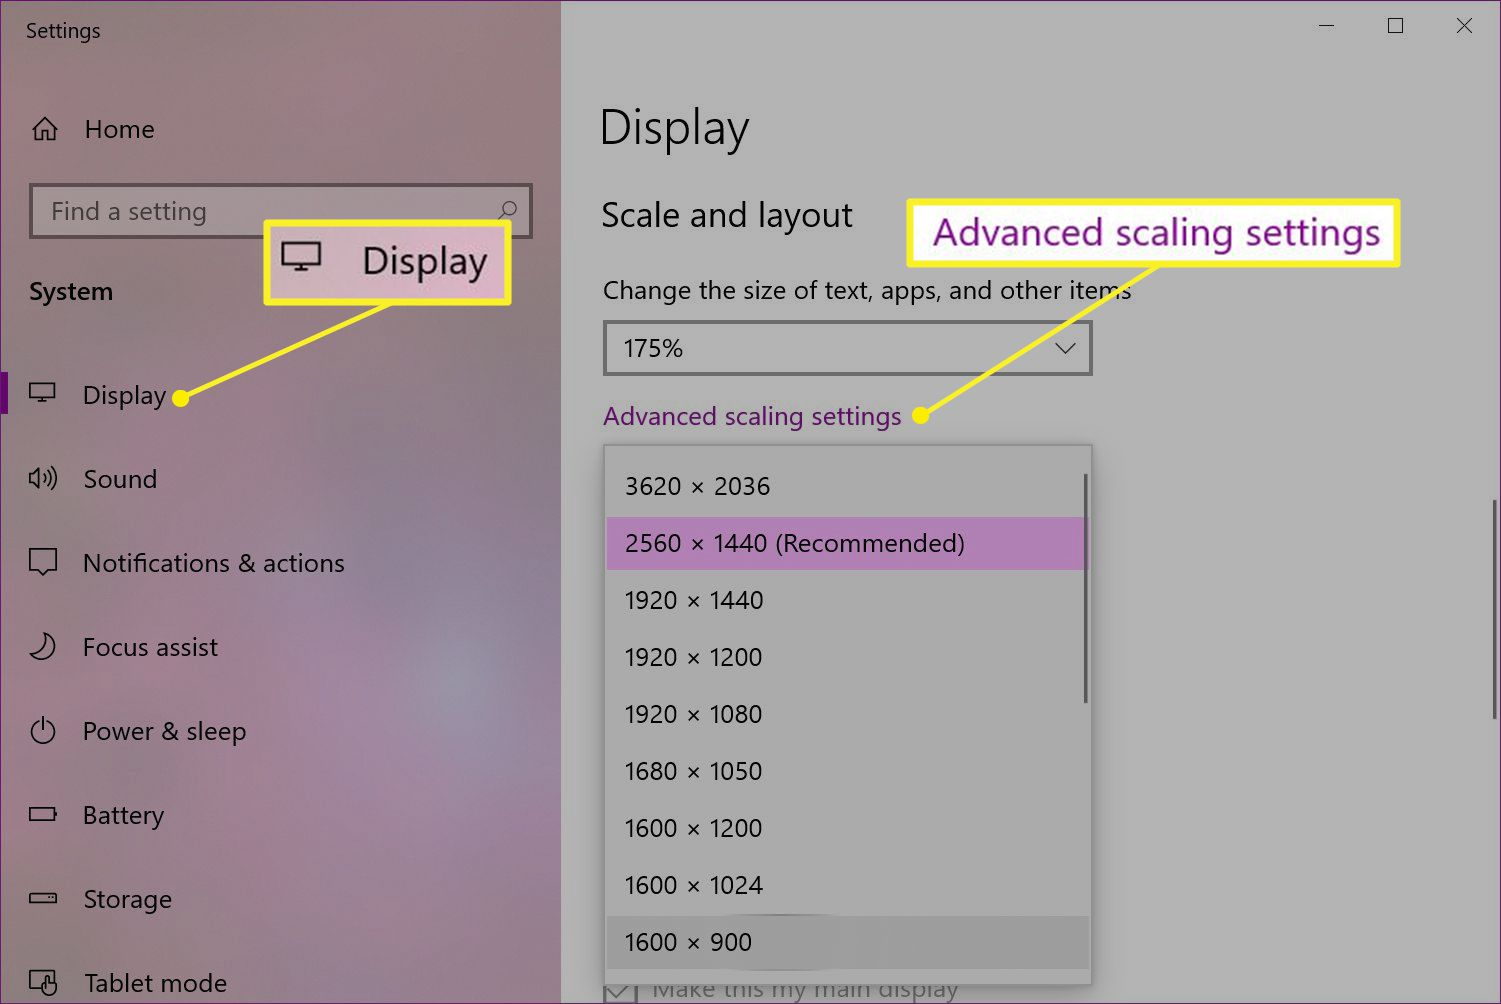 Windows Display settings with Advanced scaling settings highlighted